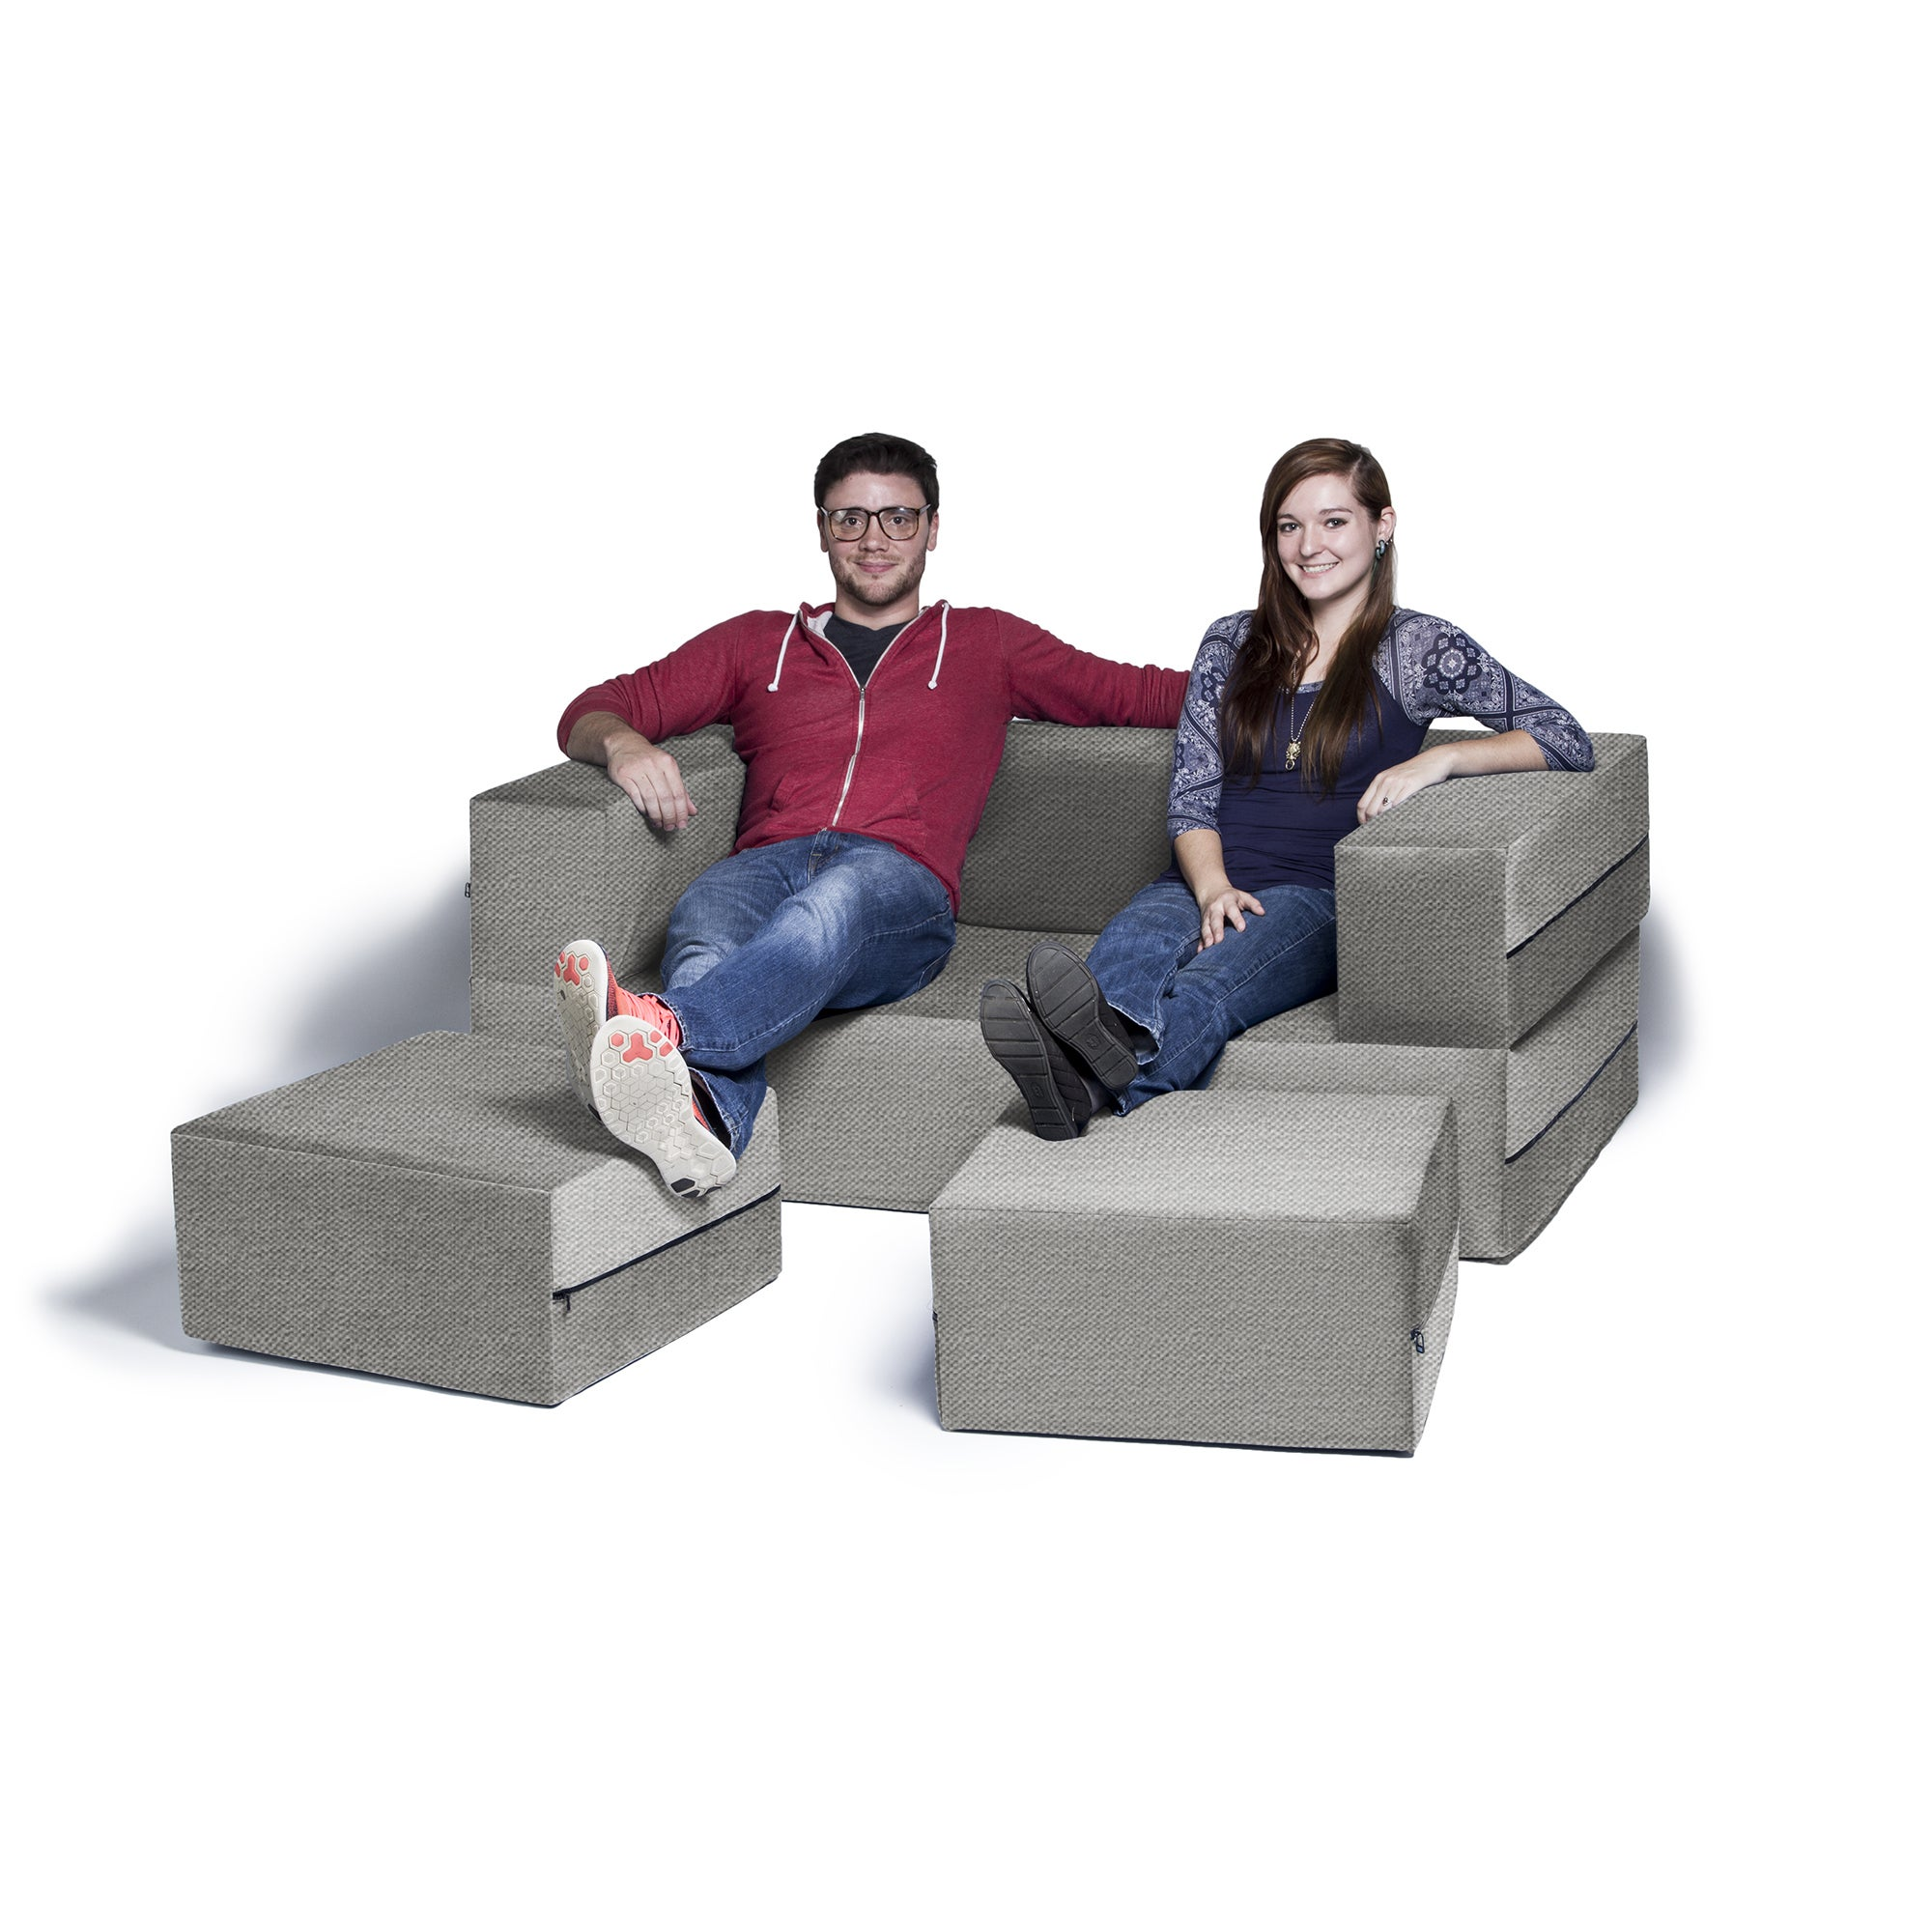 Jaxx Zipline Convertible Sleeper Loveseat And Ottomans Queen Size  ~ Queen Sleeper Sofa Dimensions When Open